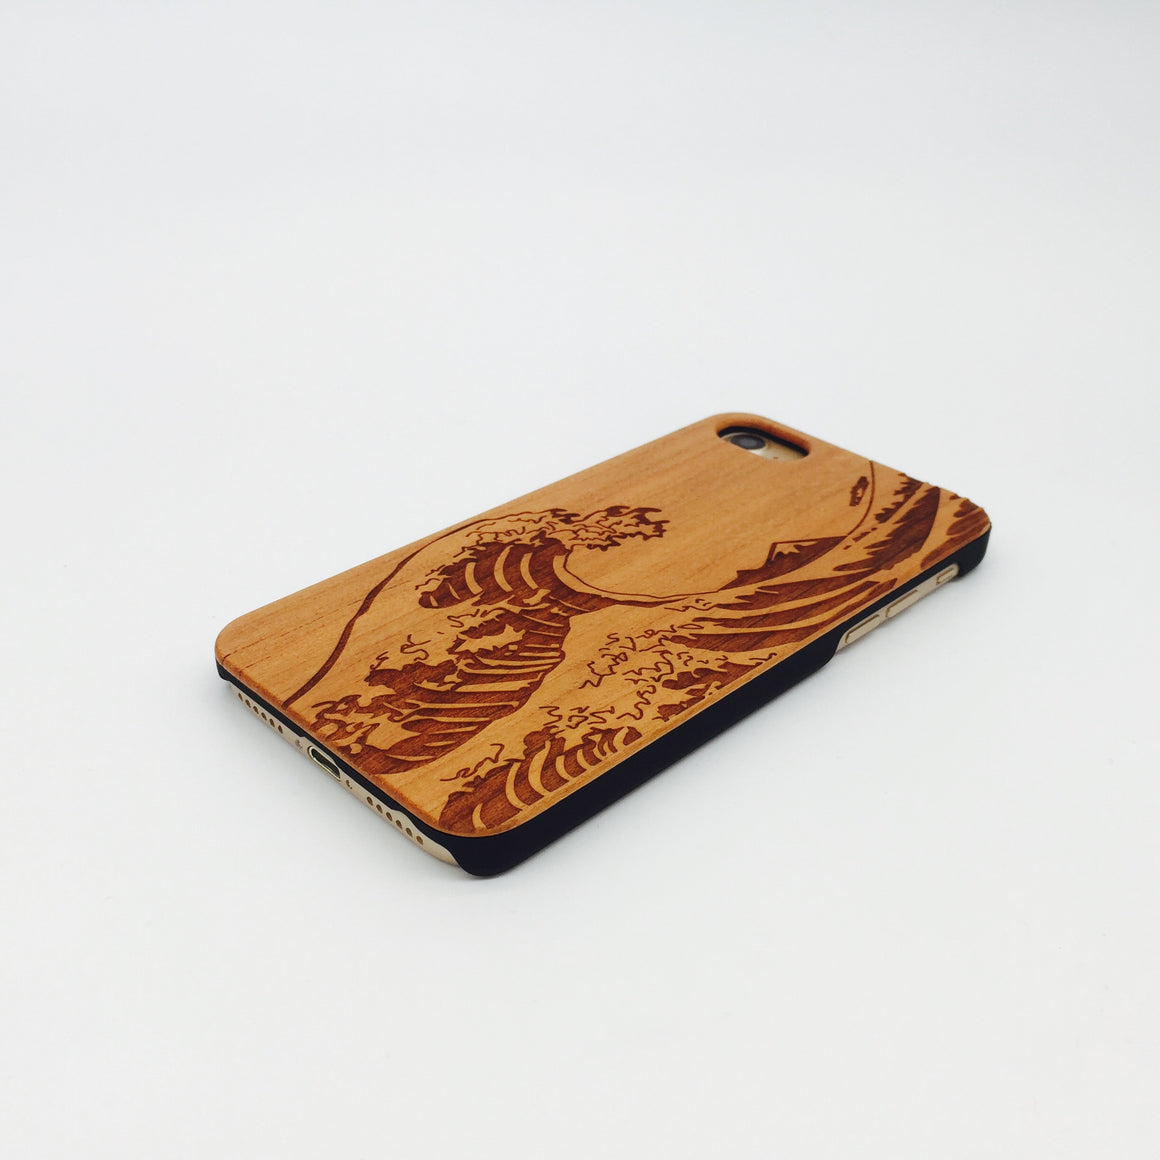 The great wave | iPhone 7, iPhone 7 Plus, iPhone 8/ iPhone 8 Plus Slim back